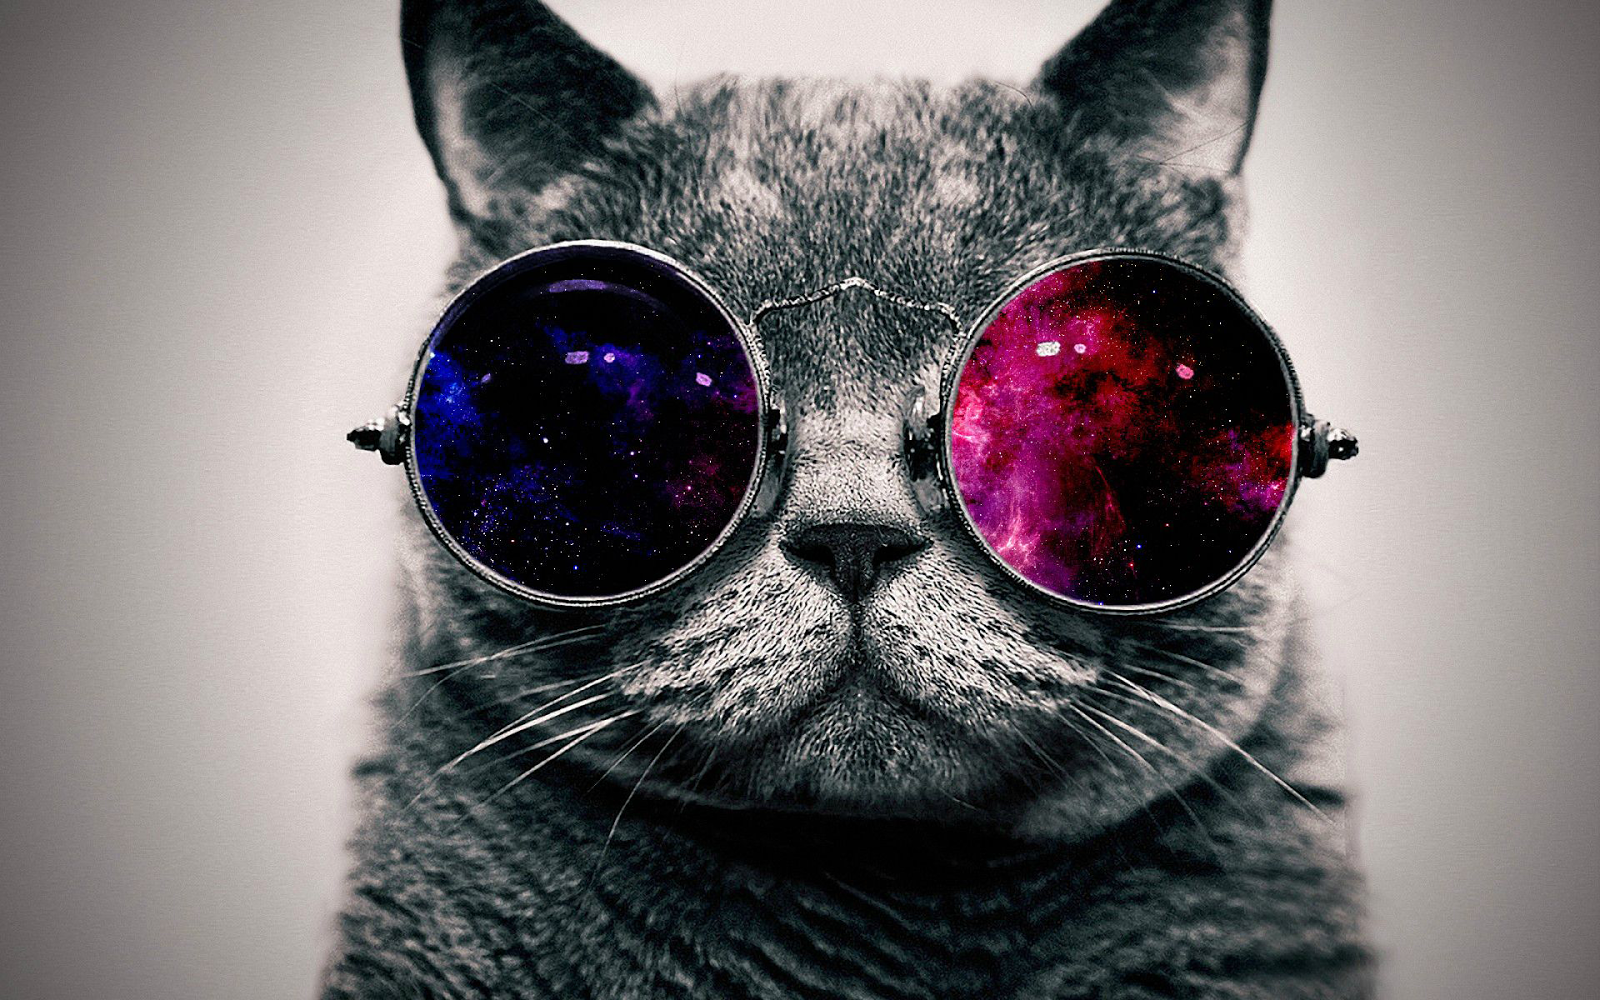 funny cat with glasses picture cats wallpapers cat wallpaper 1600x1000